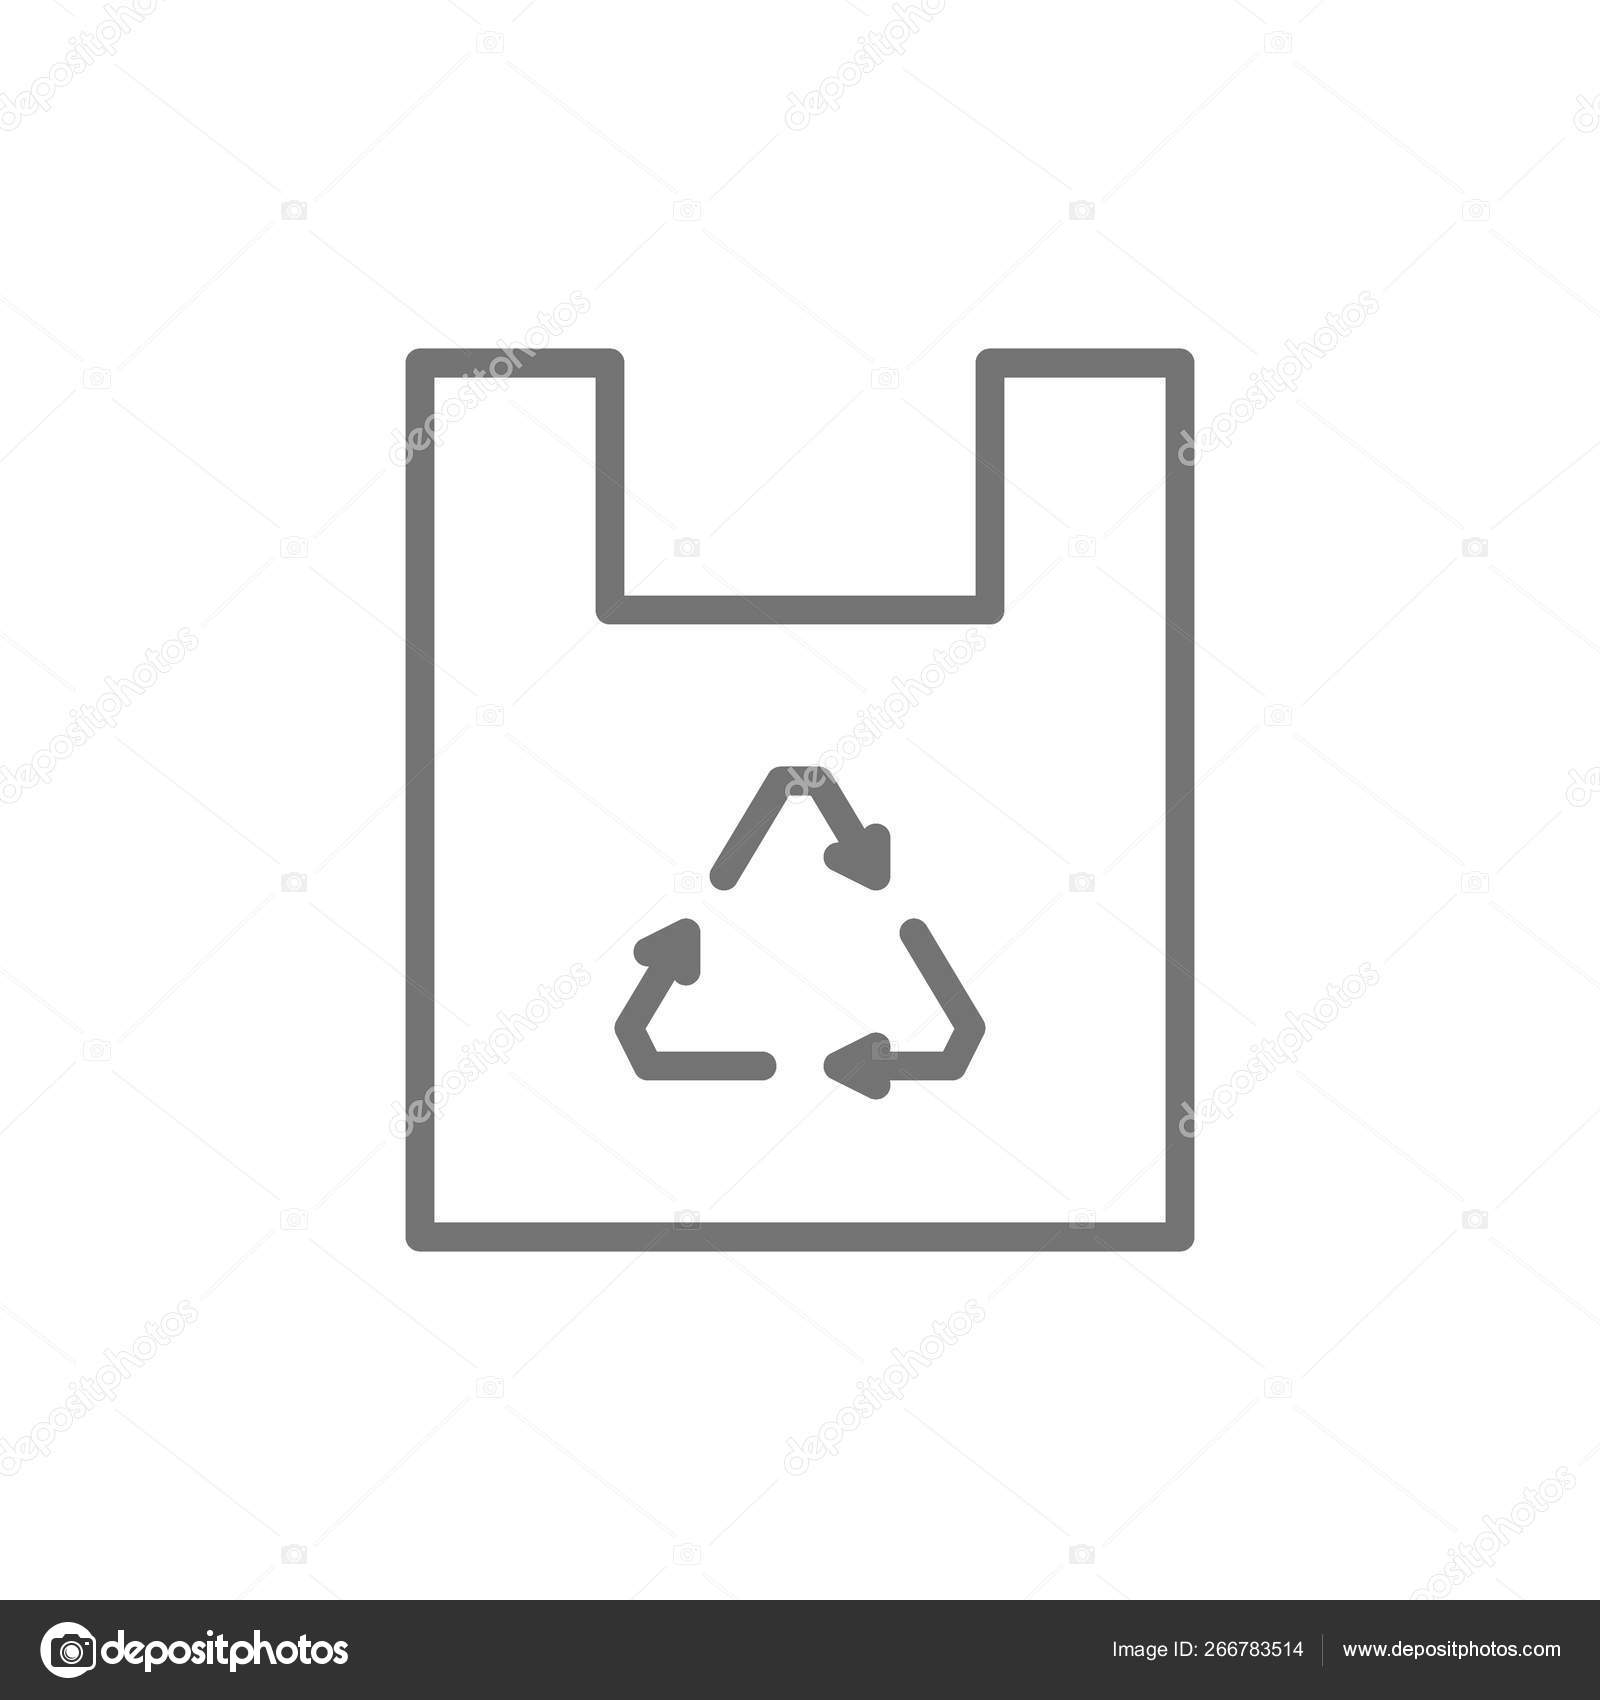 hight resolution of vector plastic bag waste recycling trash line icon symbol and sign illustration design isolated on white background vector by studicon